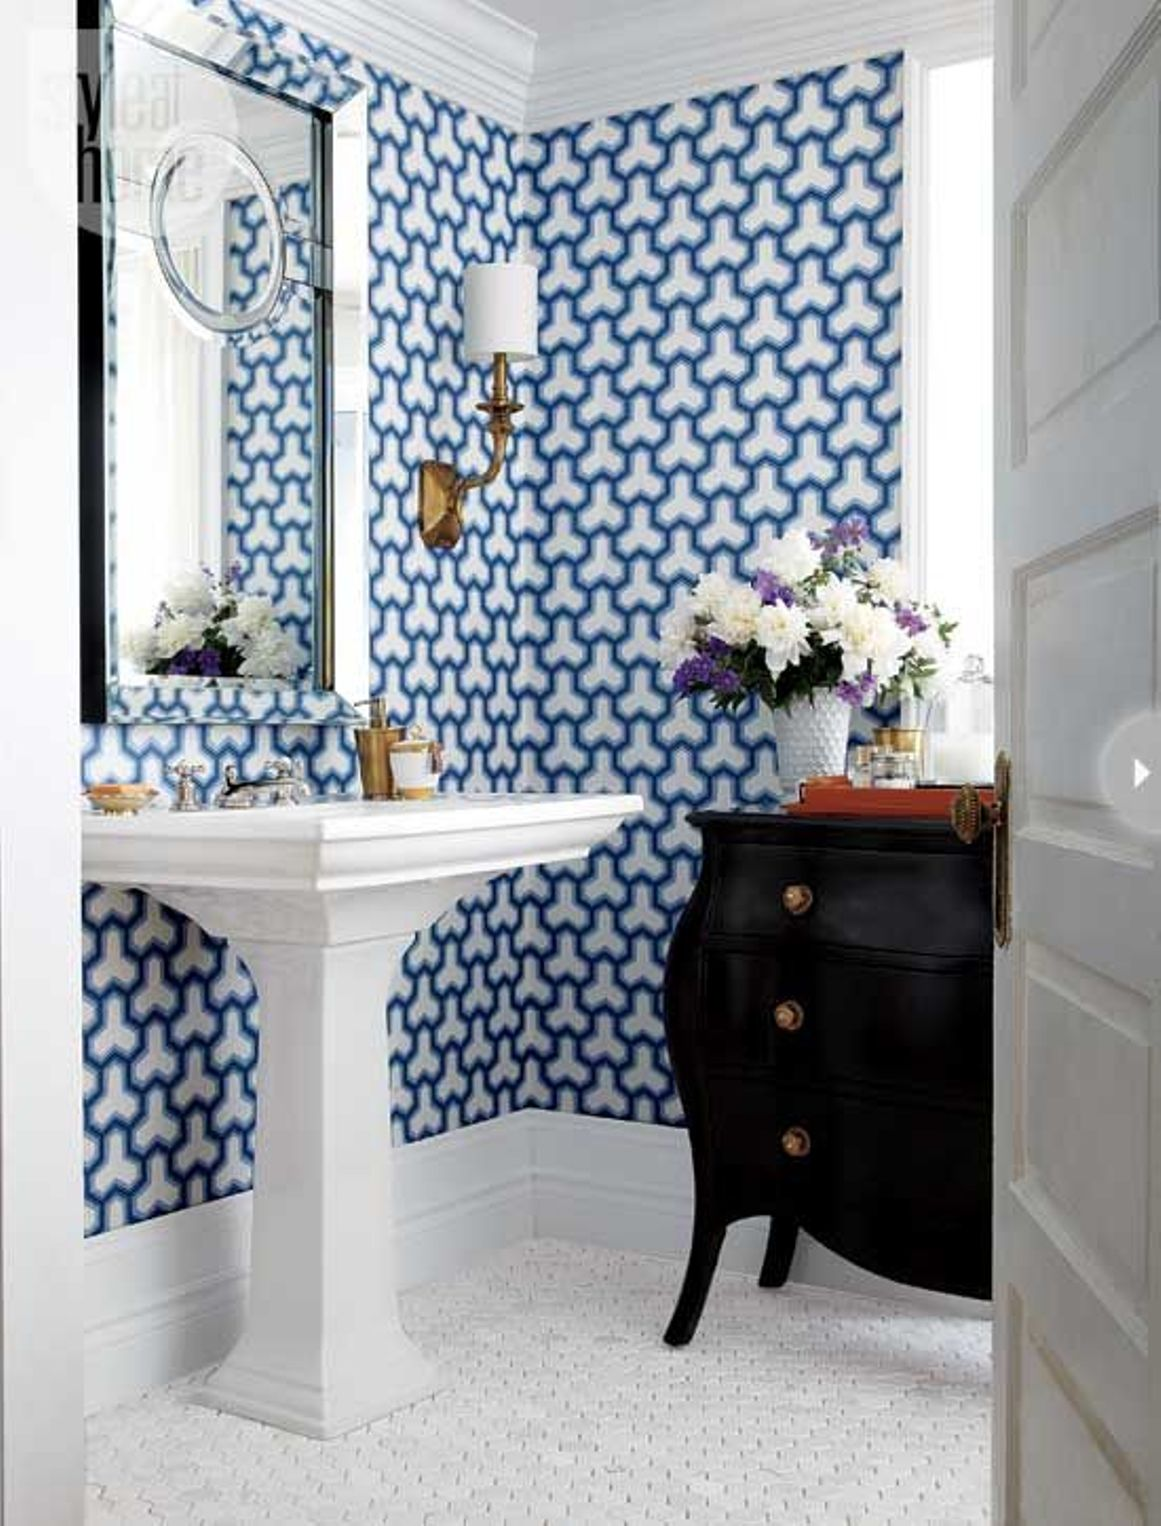 30 ideas on using hex tiles for bathroom floors Do your own bathroom design